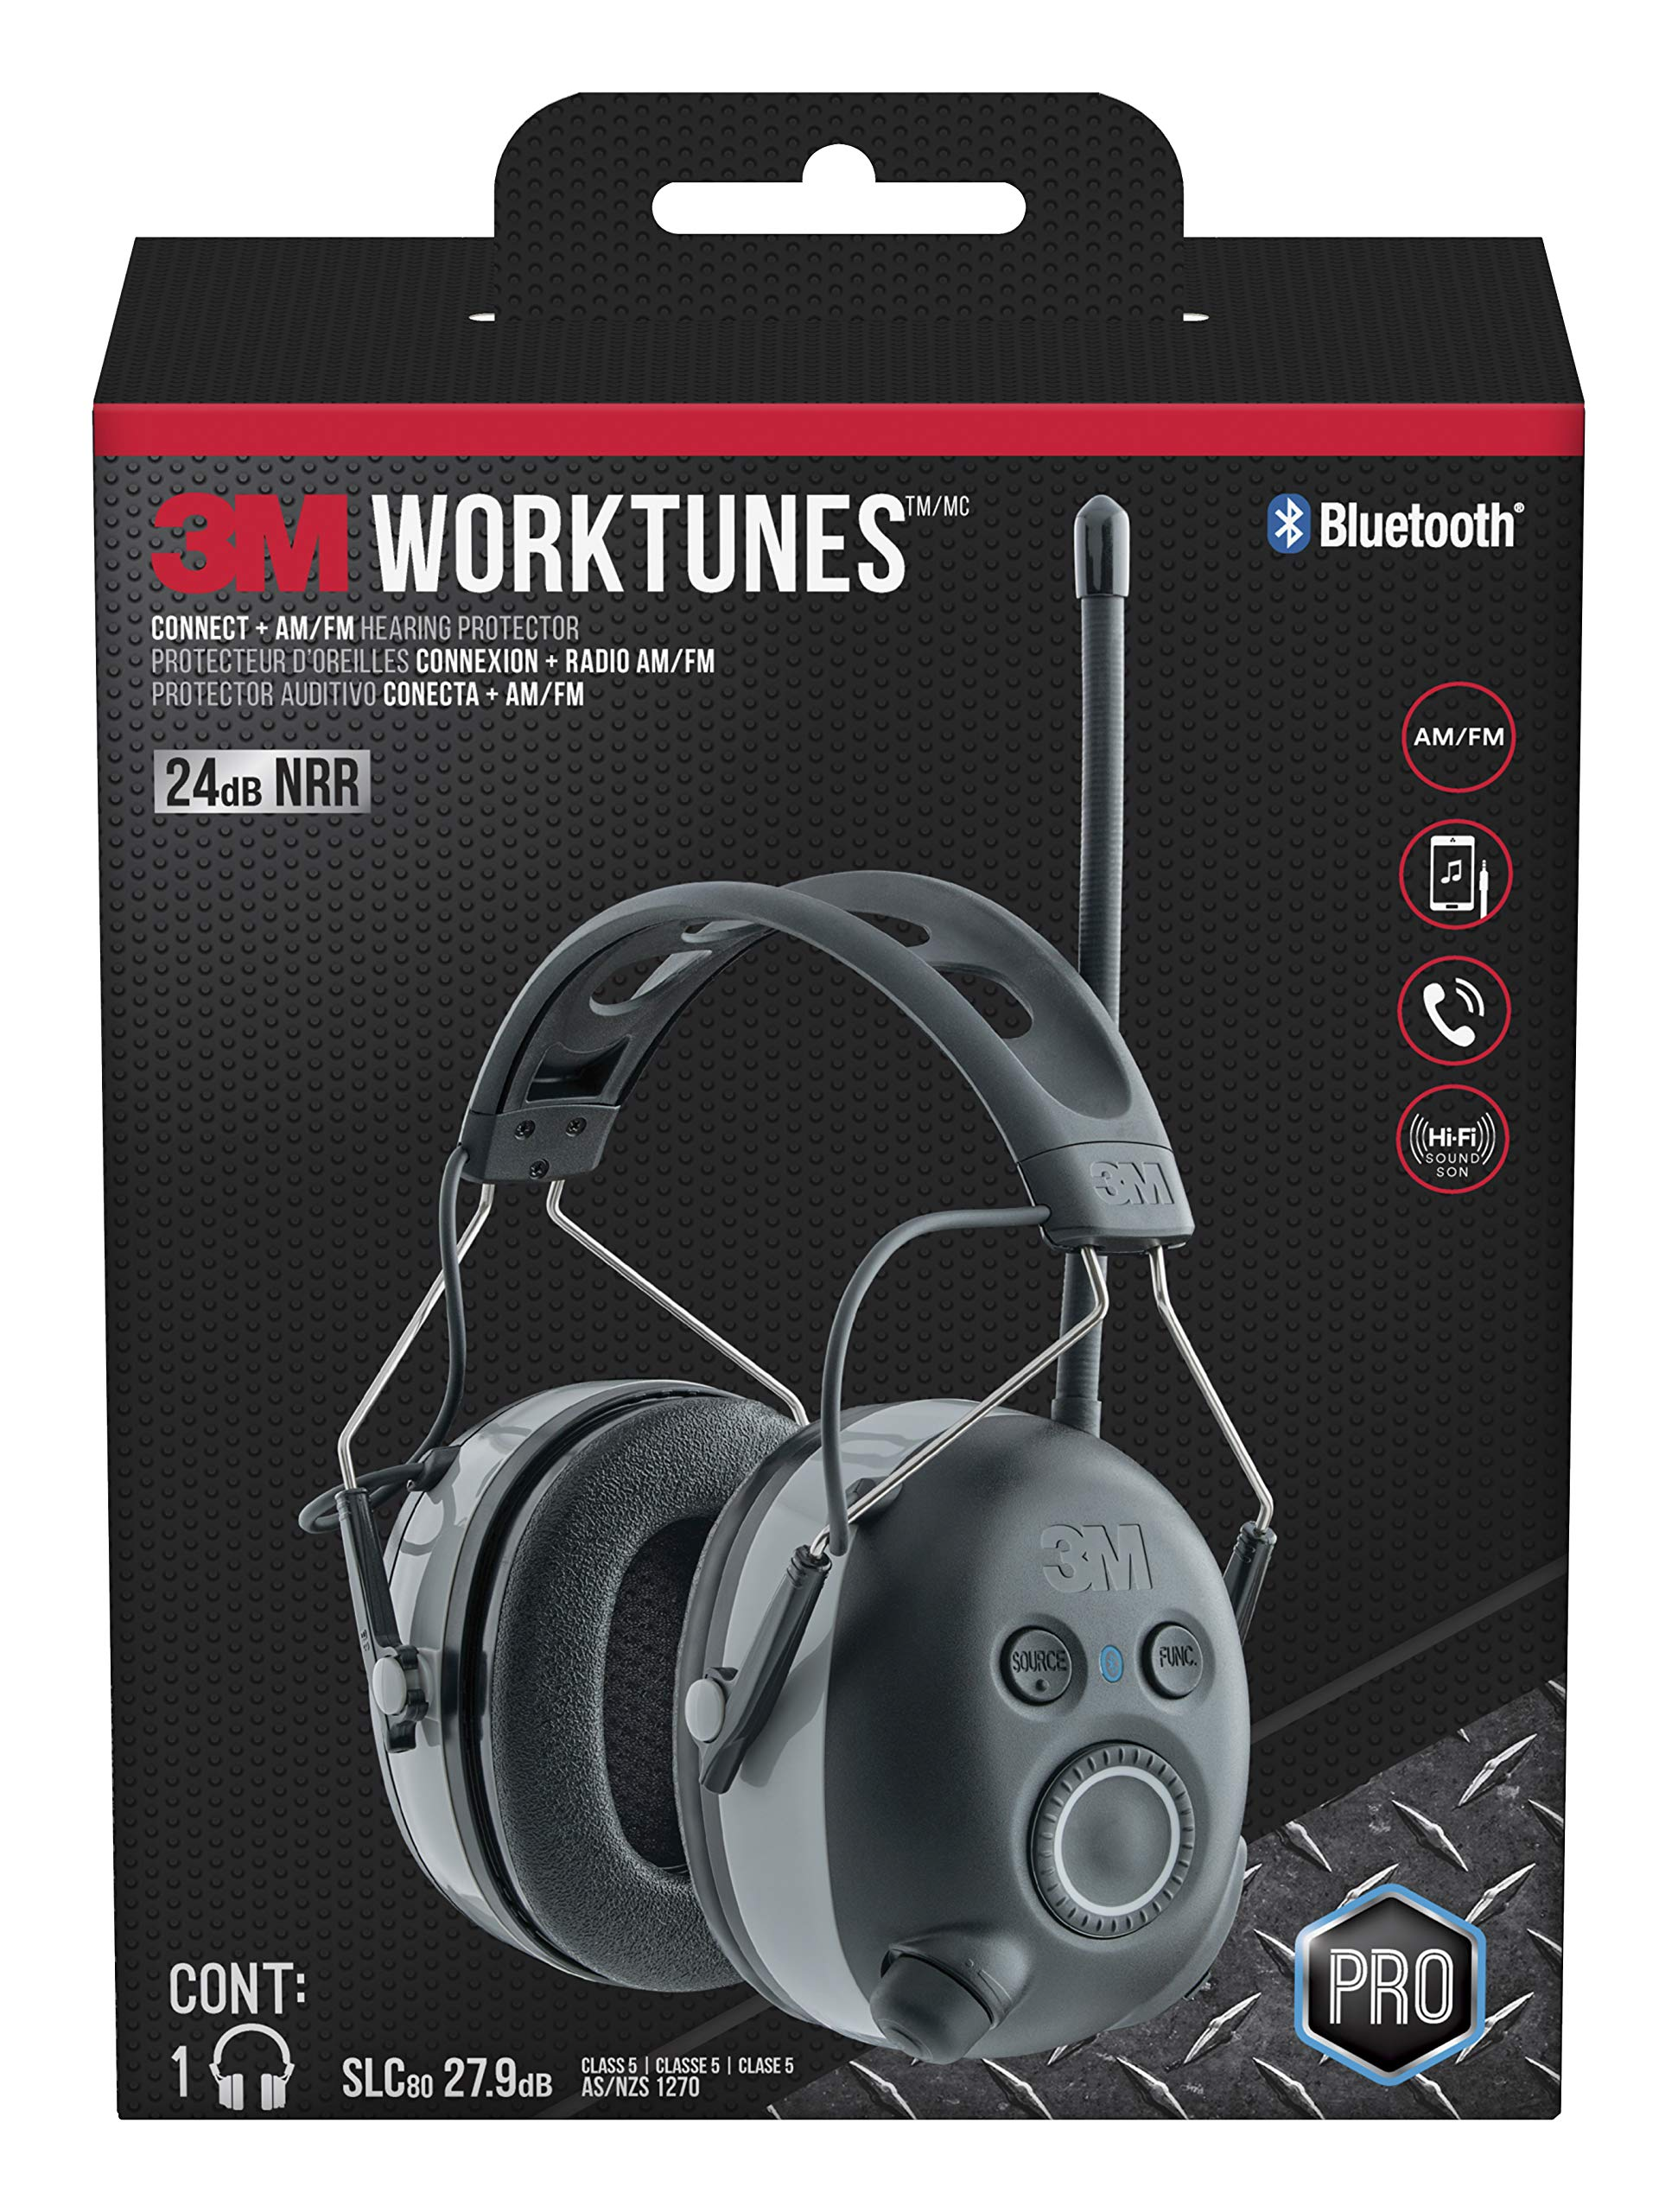 3M WorkTunes Connect + AM/FM Hearing Protector with Bluetooth technology by 3M Safety